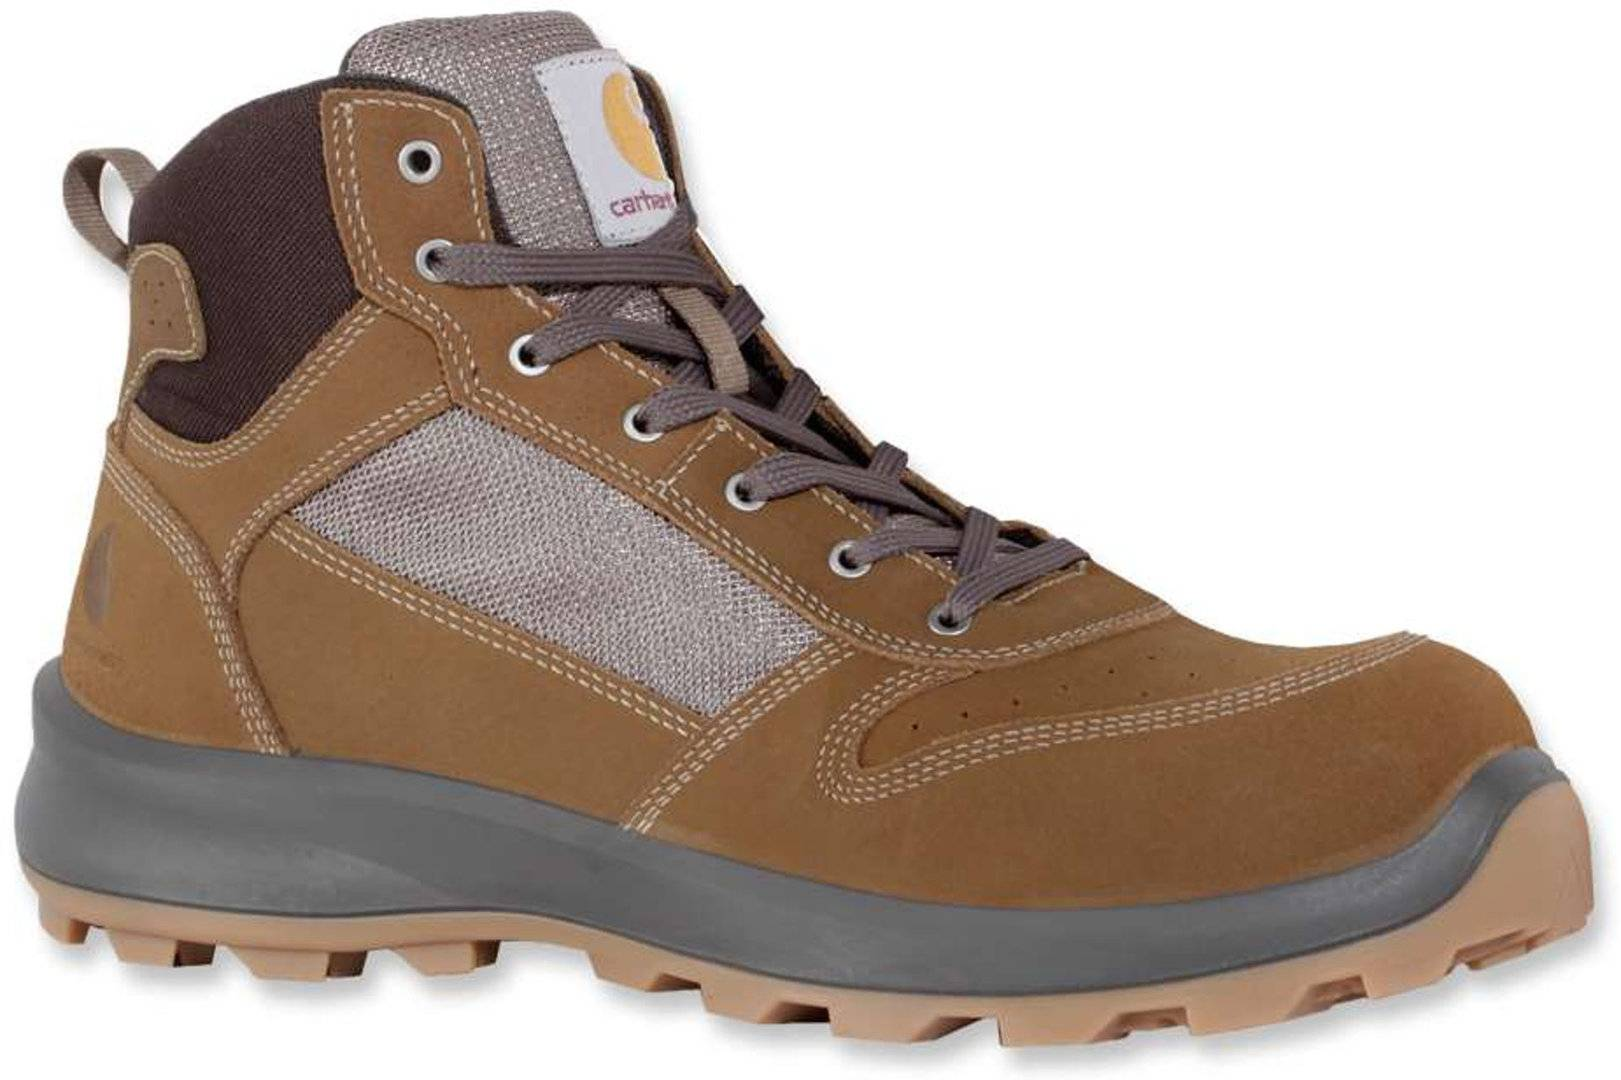 Carhartt Mid S1P Safety Boots Brown 40